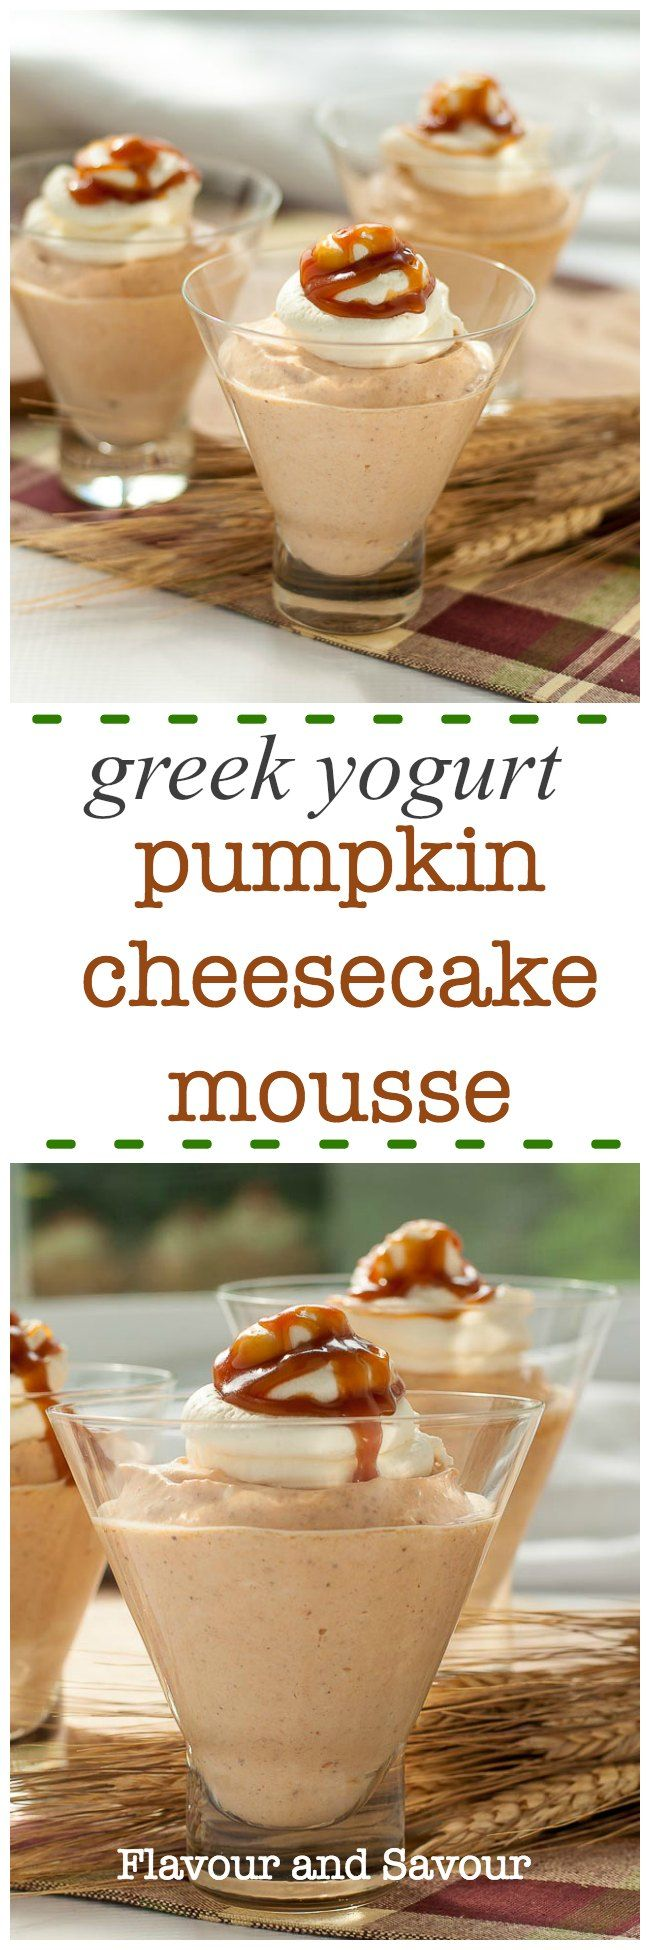 This Greek Yogurt Pumpkin Cheesecake Mouse is a rich and creamy no-bake mousse, made with canned pumpkin, Greek yogurt, and sweetened with maple syrup. Top with a dollop of whipped cream and a drizzle of caramel sauce for a decadent fall dessert!